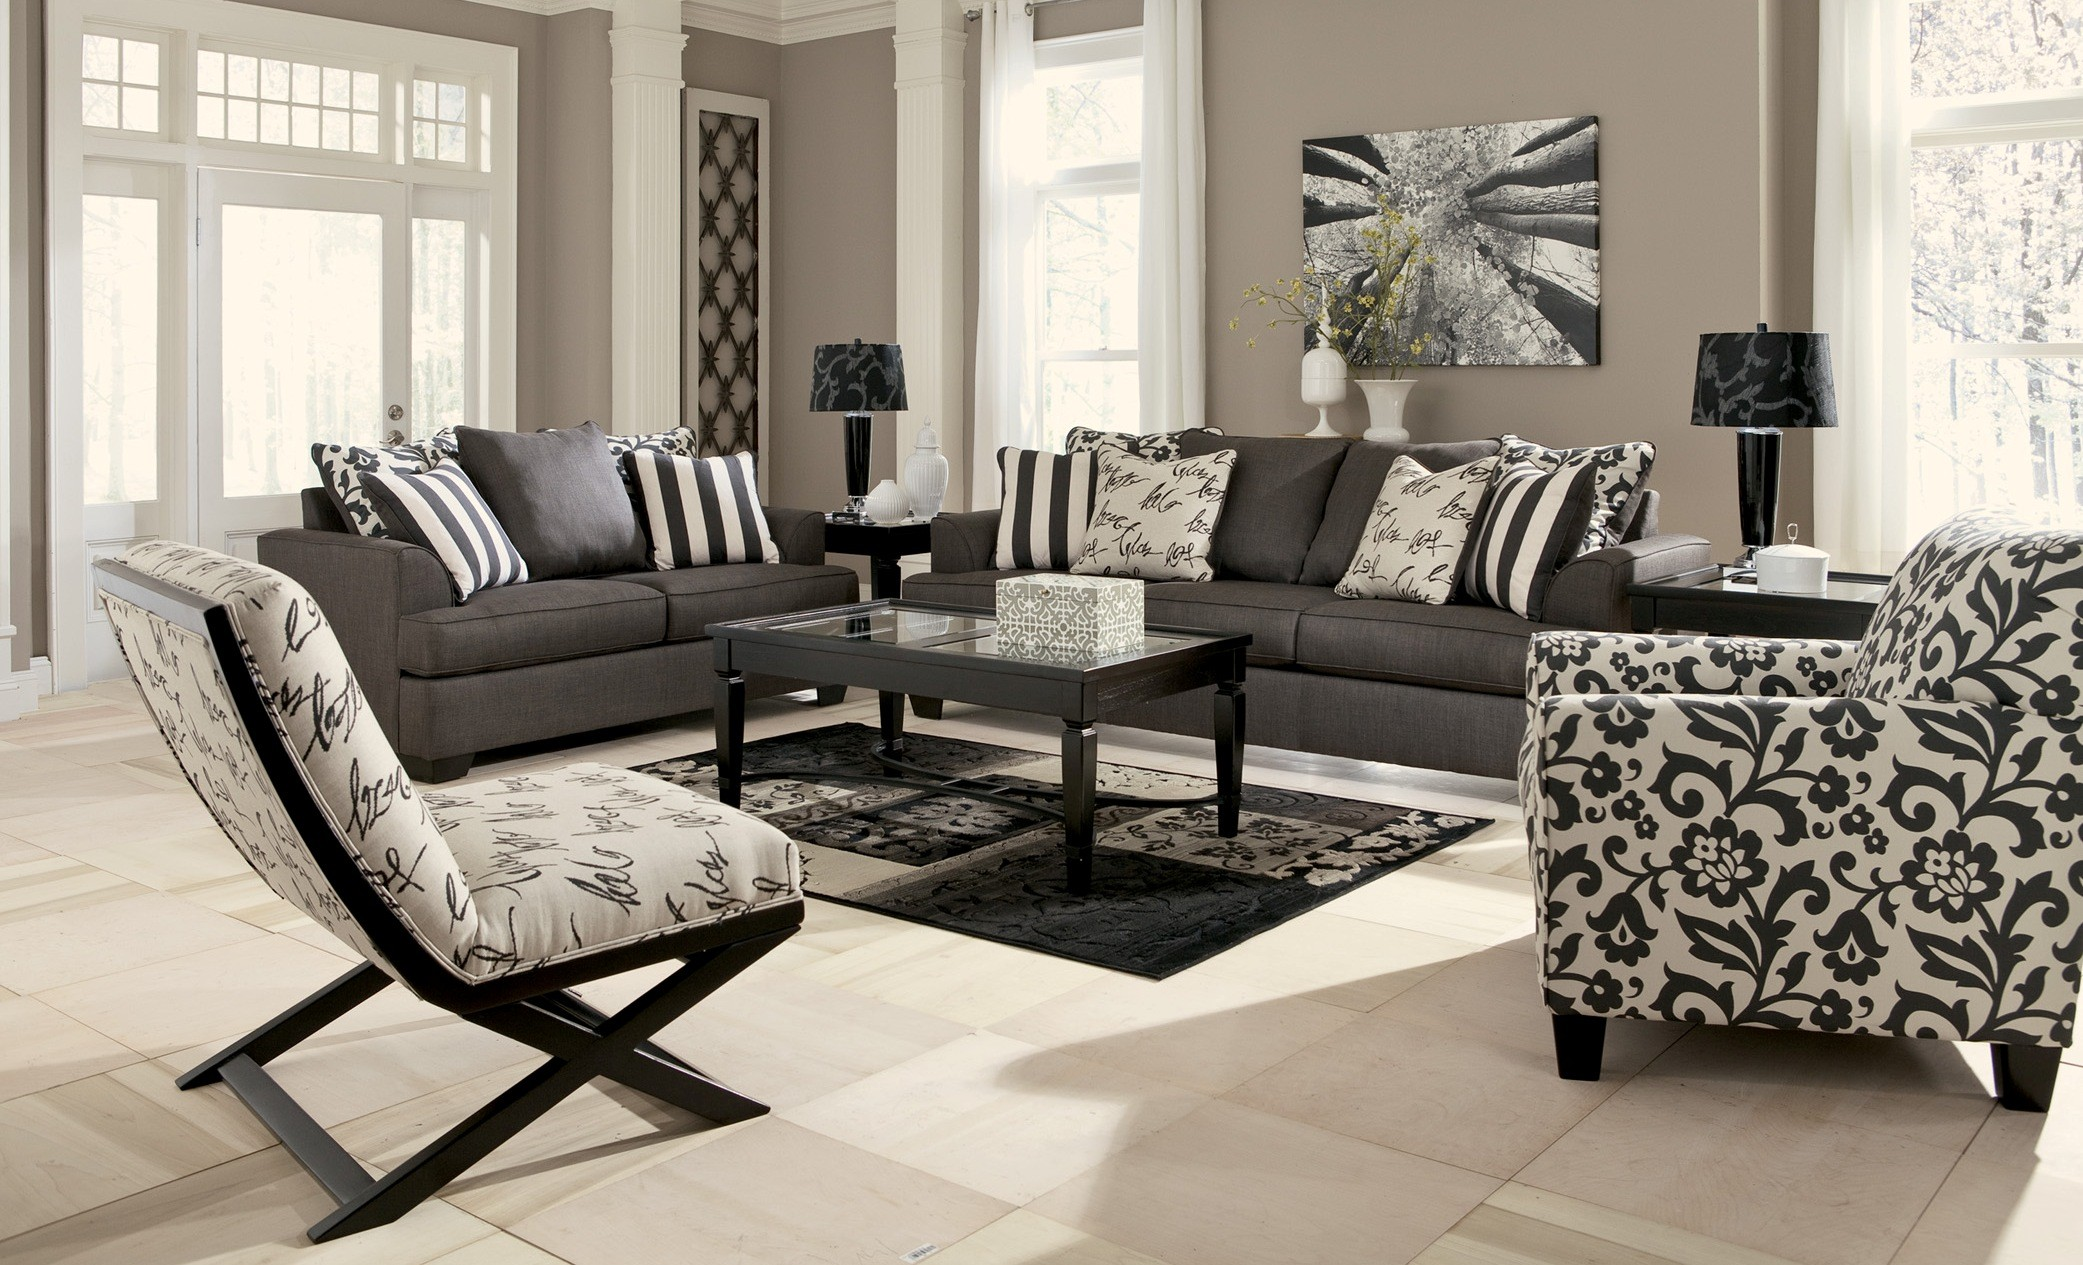 Levon charcoal living room set from ashley 73403 for High end catalogs for home decor